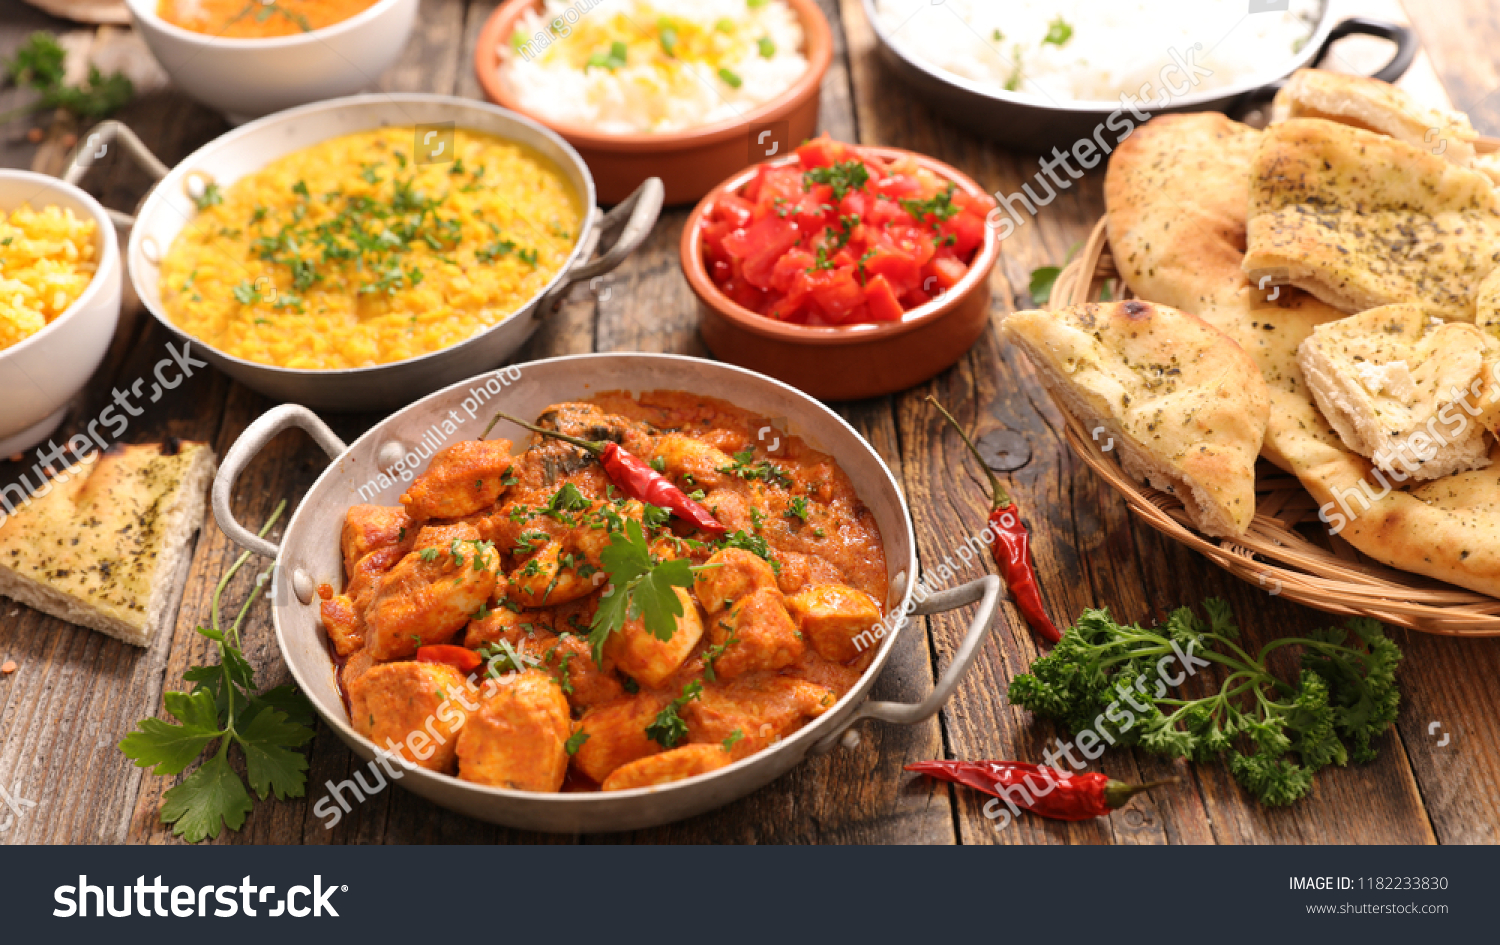 Cuisine India Assorted India Food Cuisine Stock Photo Edit Now 1182233830